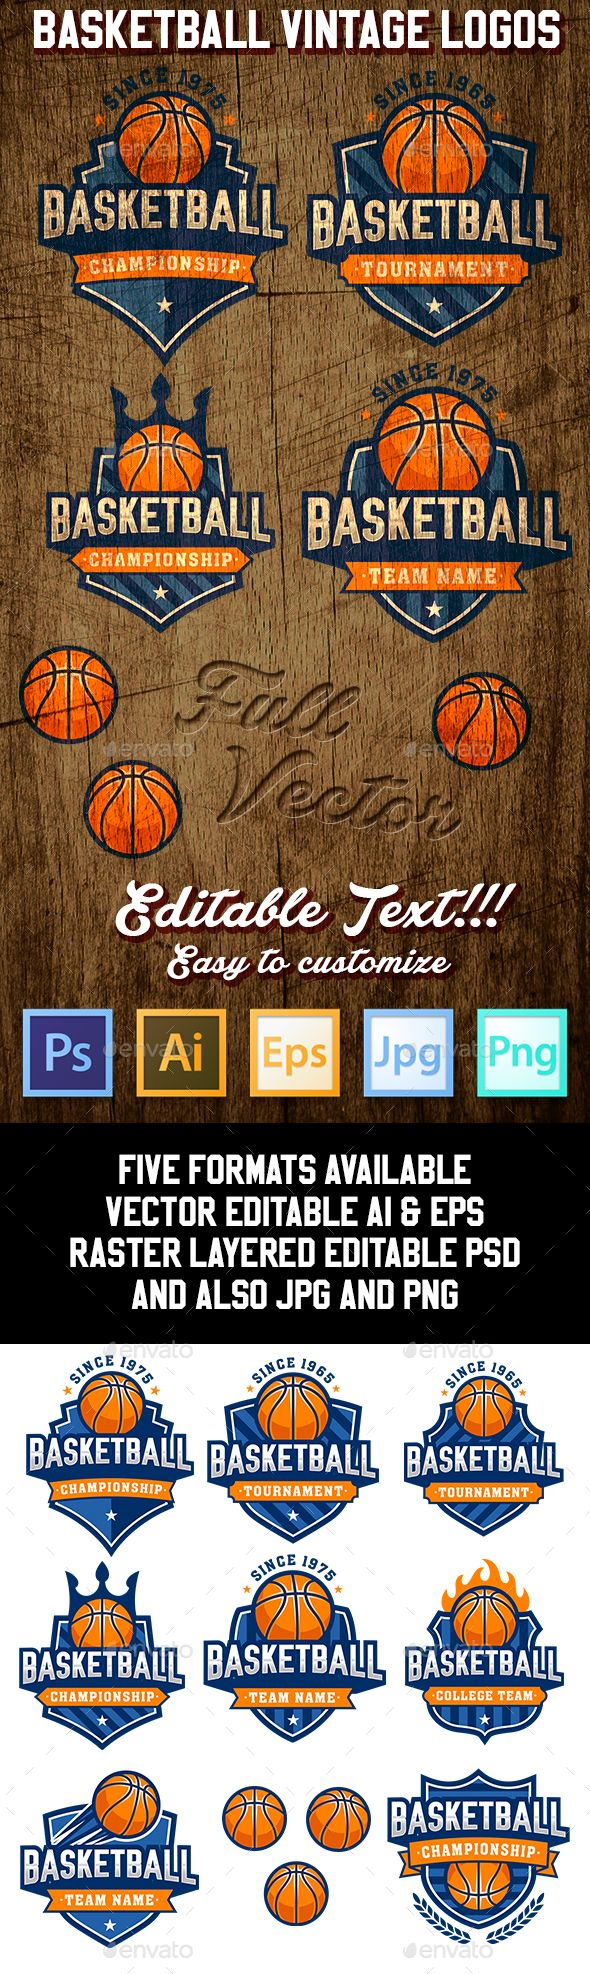 Basketball Logo Templates PSD, Transparent PNG, Vector EPS, AI Illustrator. Download here: http://graphicriver.net/item/basketball-logo-templates/16349259?ref=ksioks